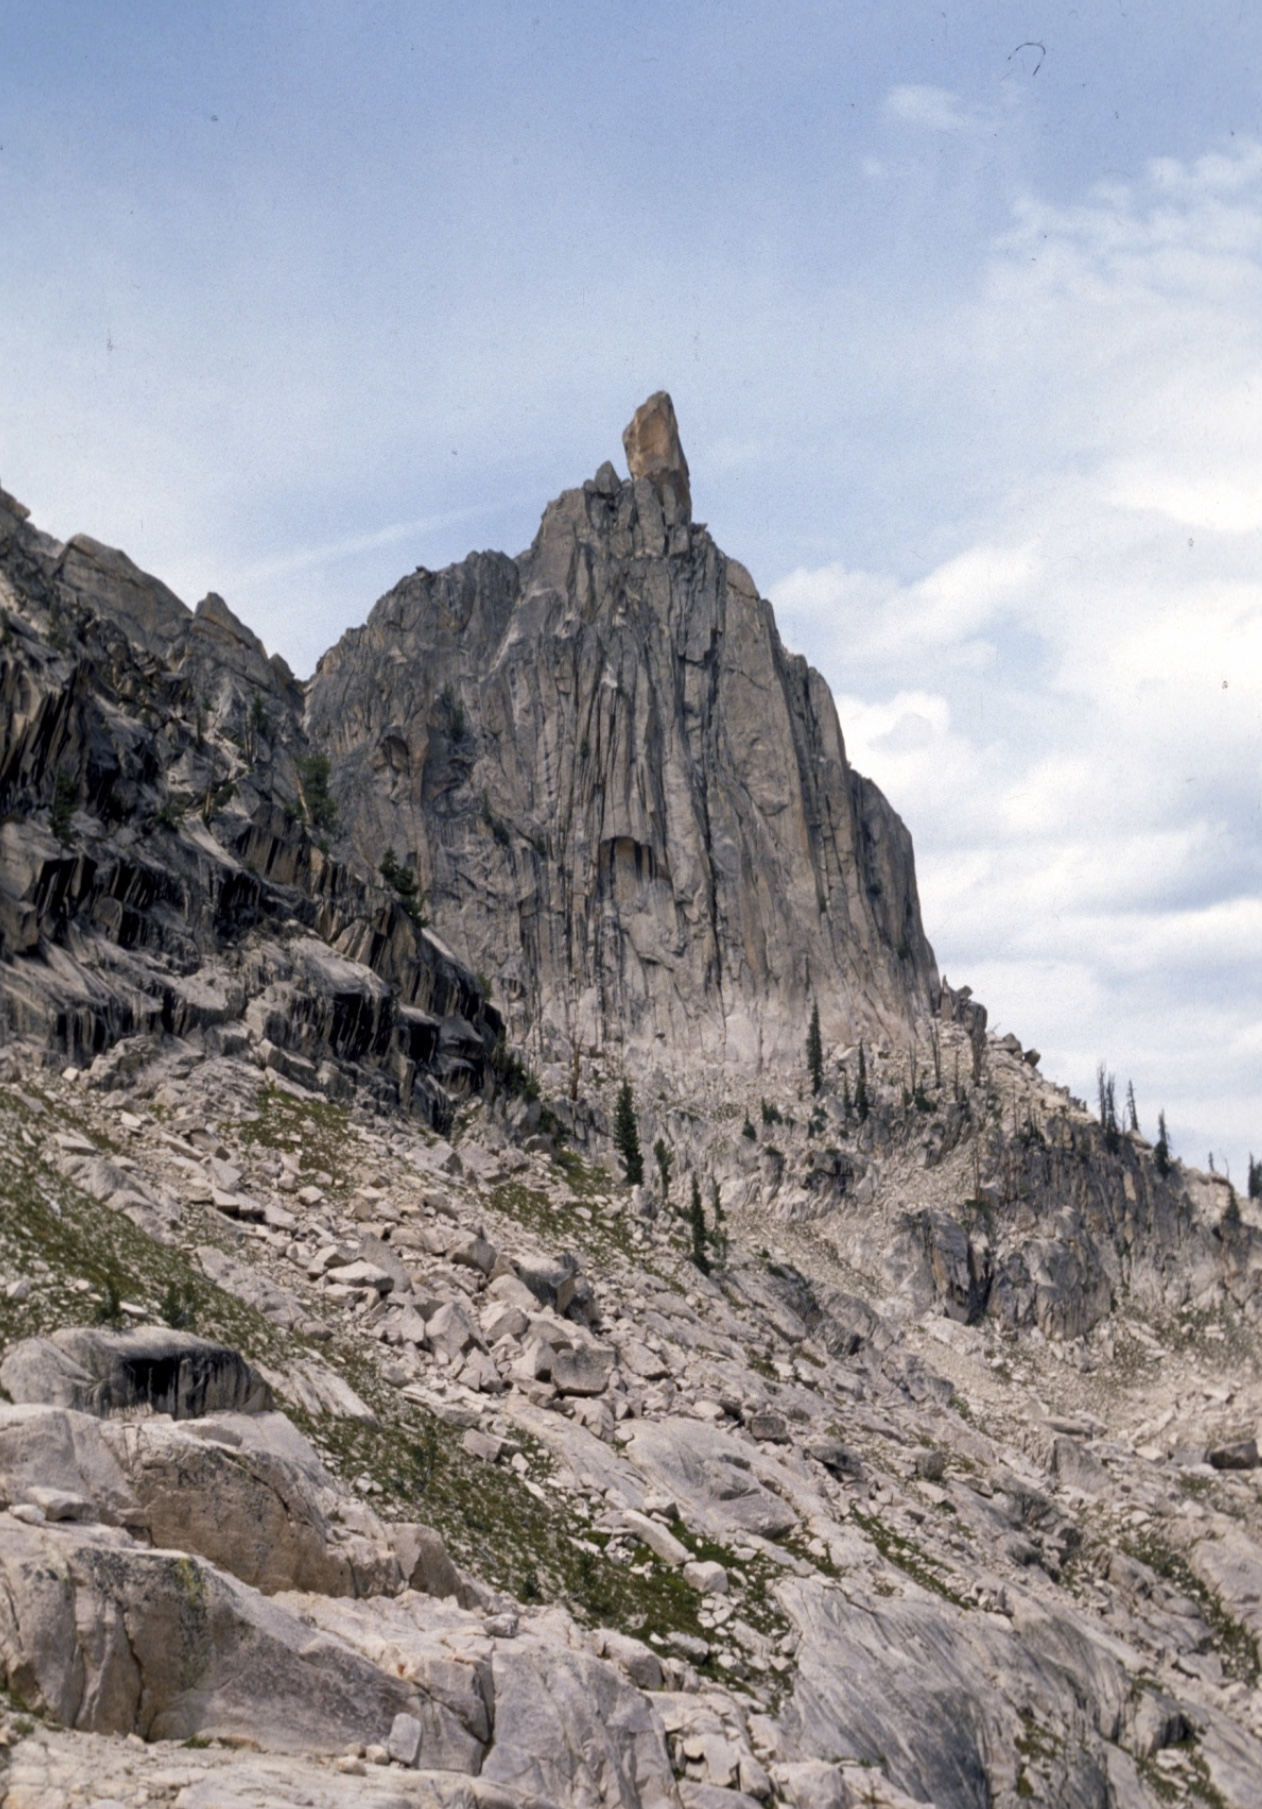 Southeast side of Big Baron Spire. Becky route traverses to just below the notch from cliffs on left of photo, then stays near ridgeline to the summit block. Ray Brooks Photo